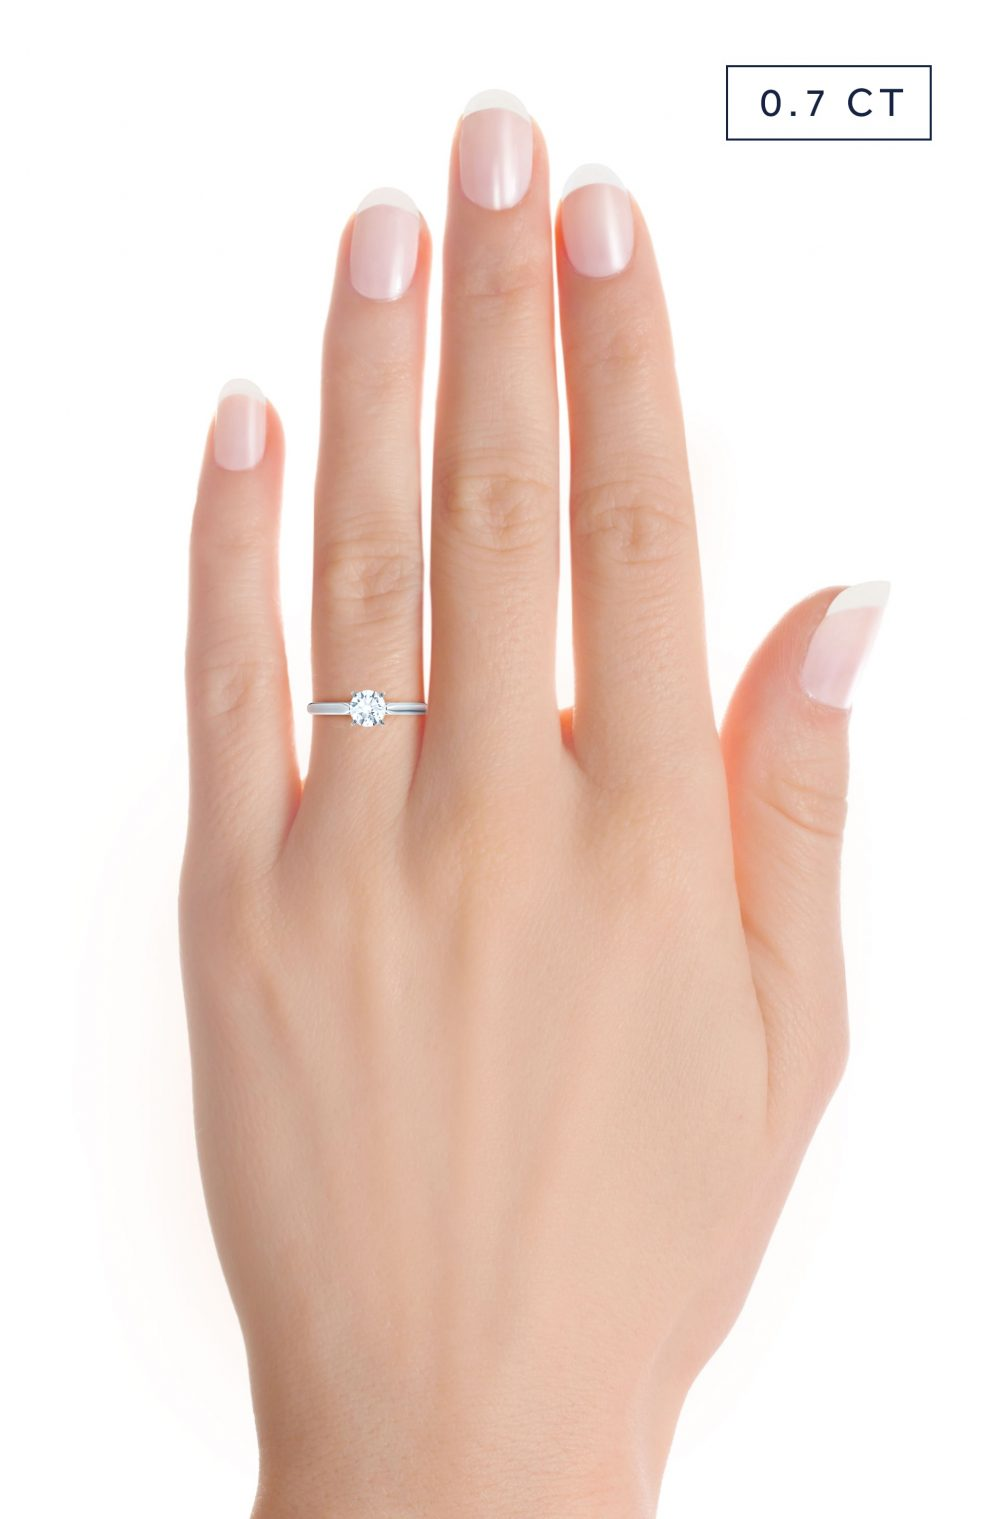 0.7ct-diamond-on-hand-1-1